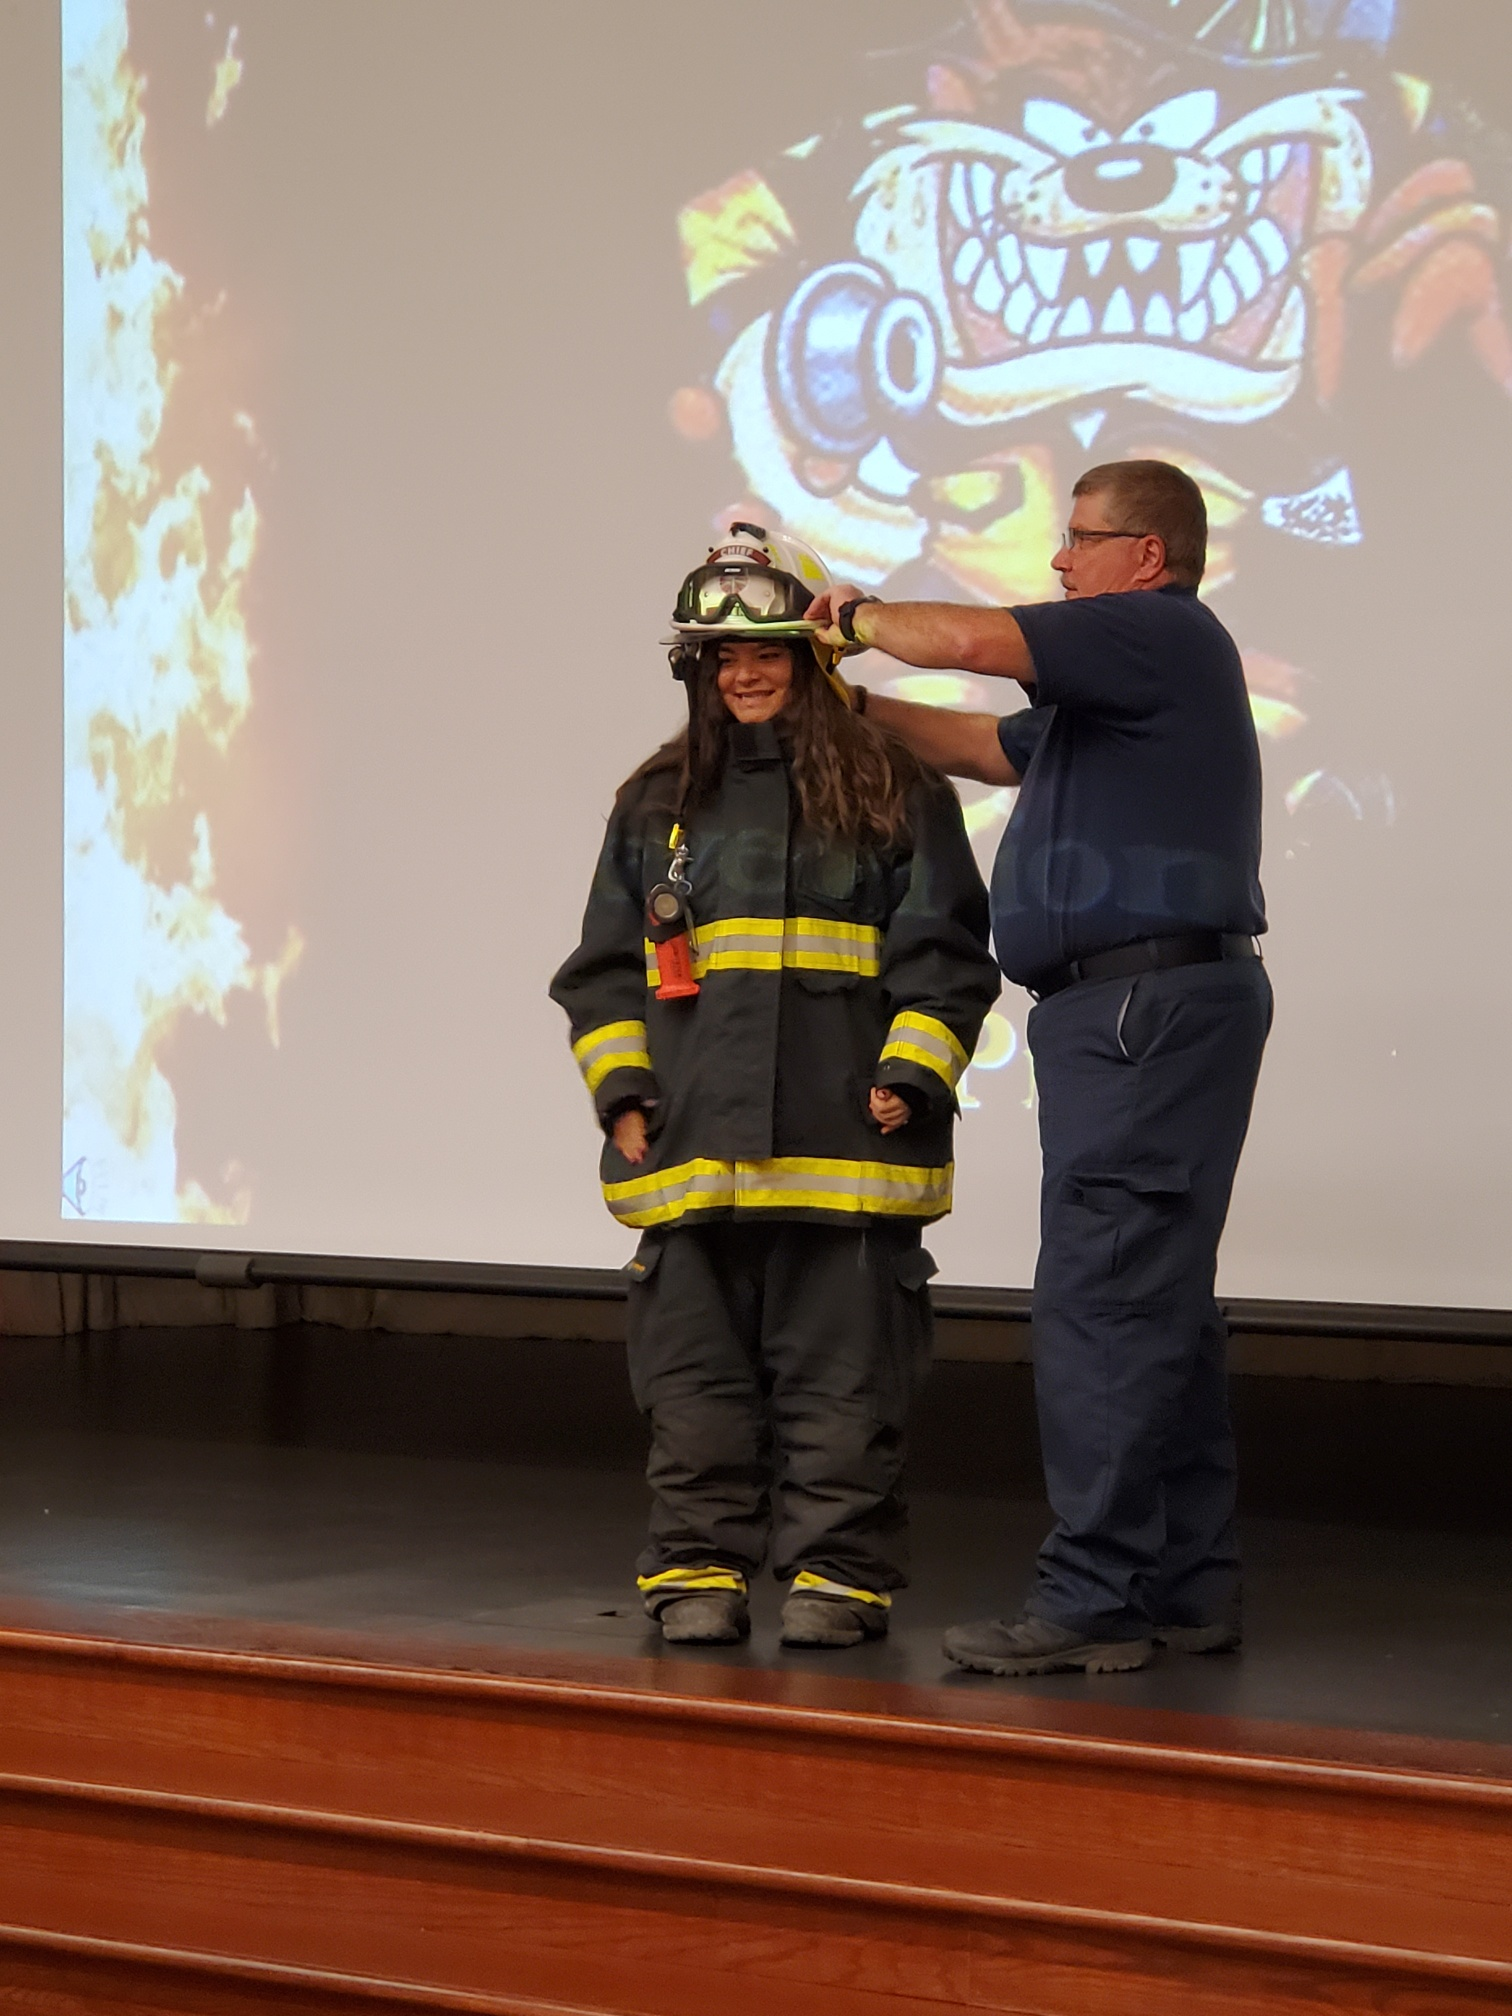 Protsman Kindergarten teacher Melissa Ballenger gets to try on protective fire gear with assistance from Dyer FD Chief Thad Stutler during a fire safety presentation on October 7, 2019.